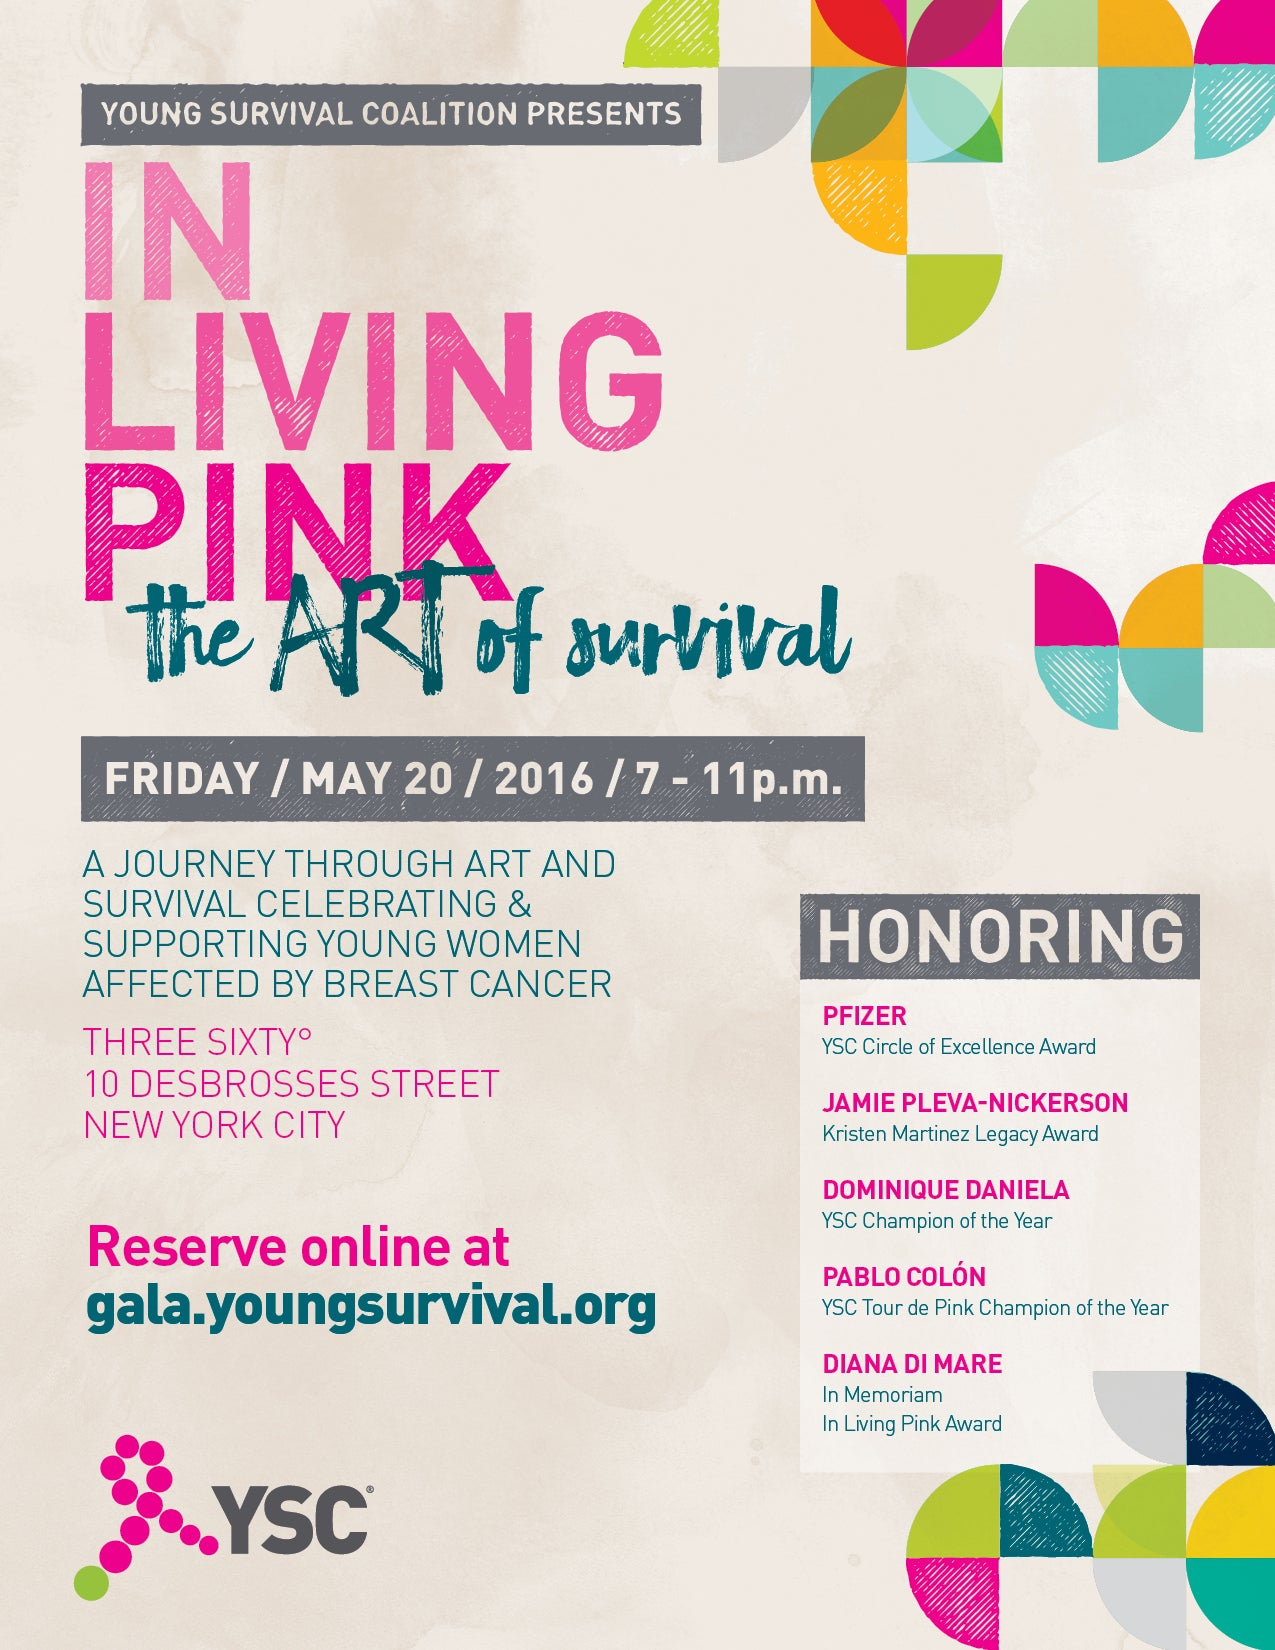 IN LIVING PINK GALA 2016